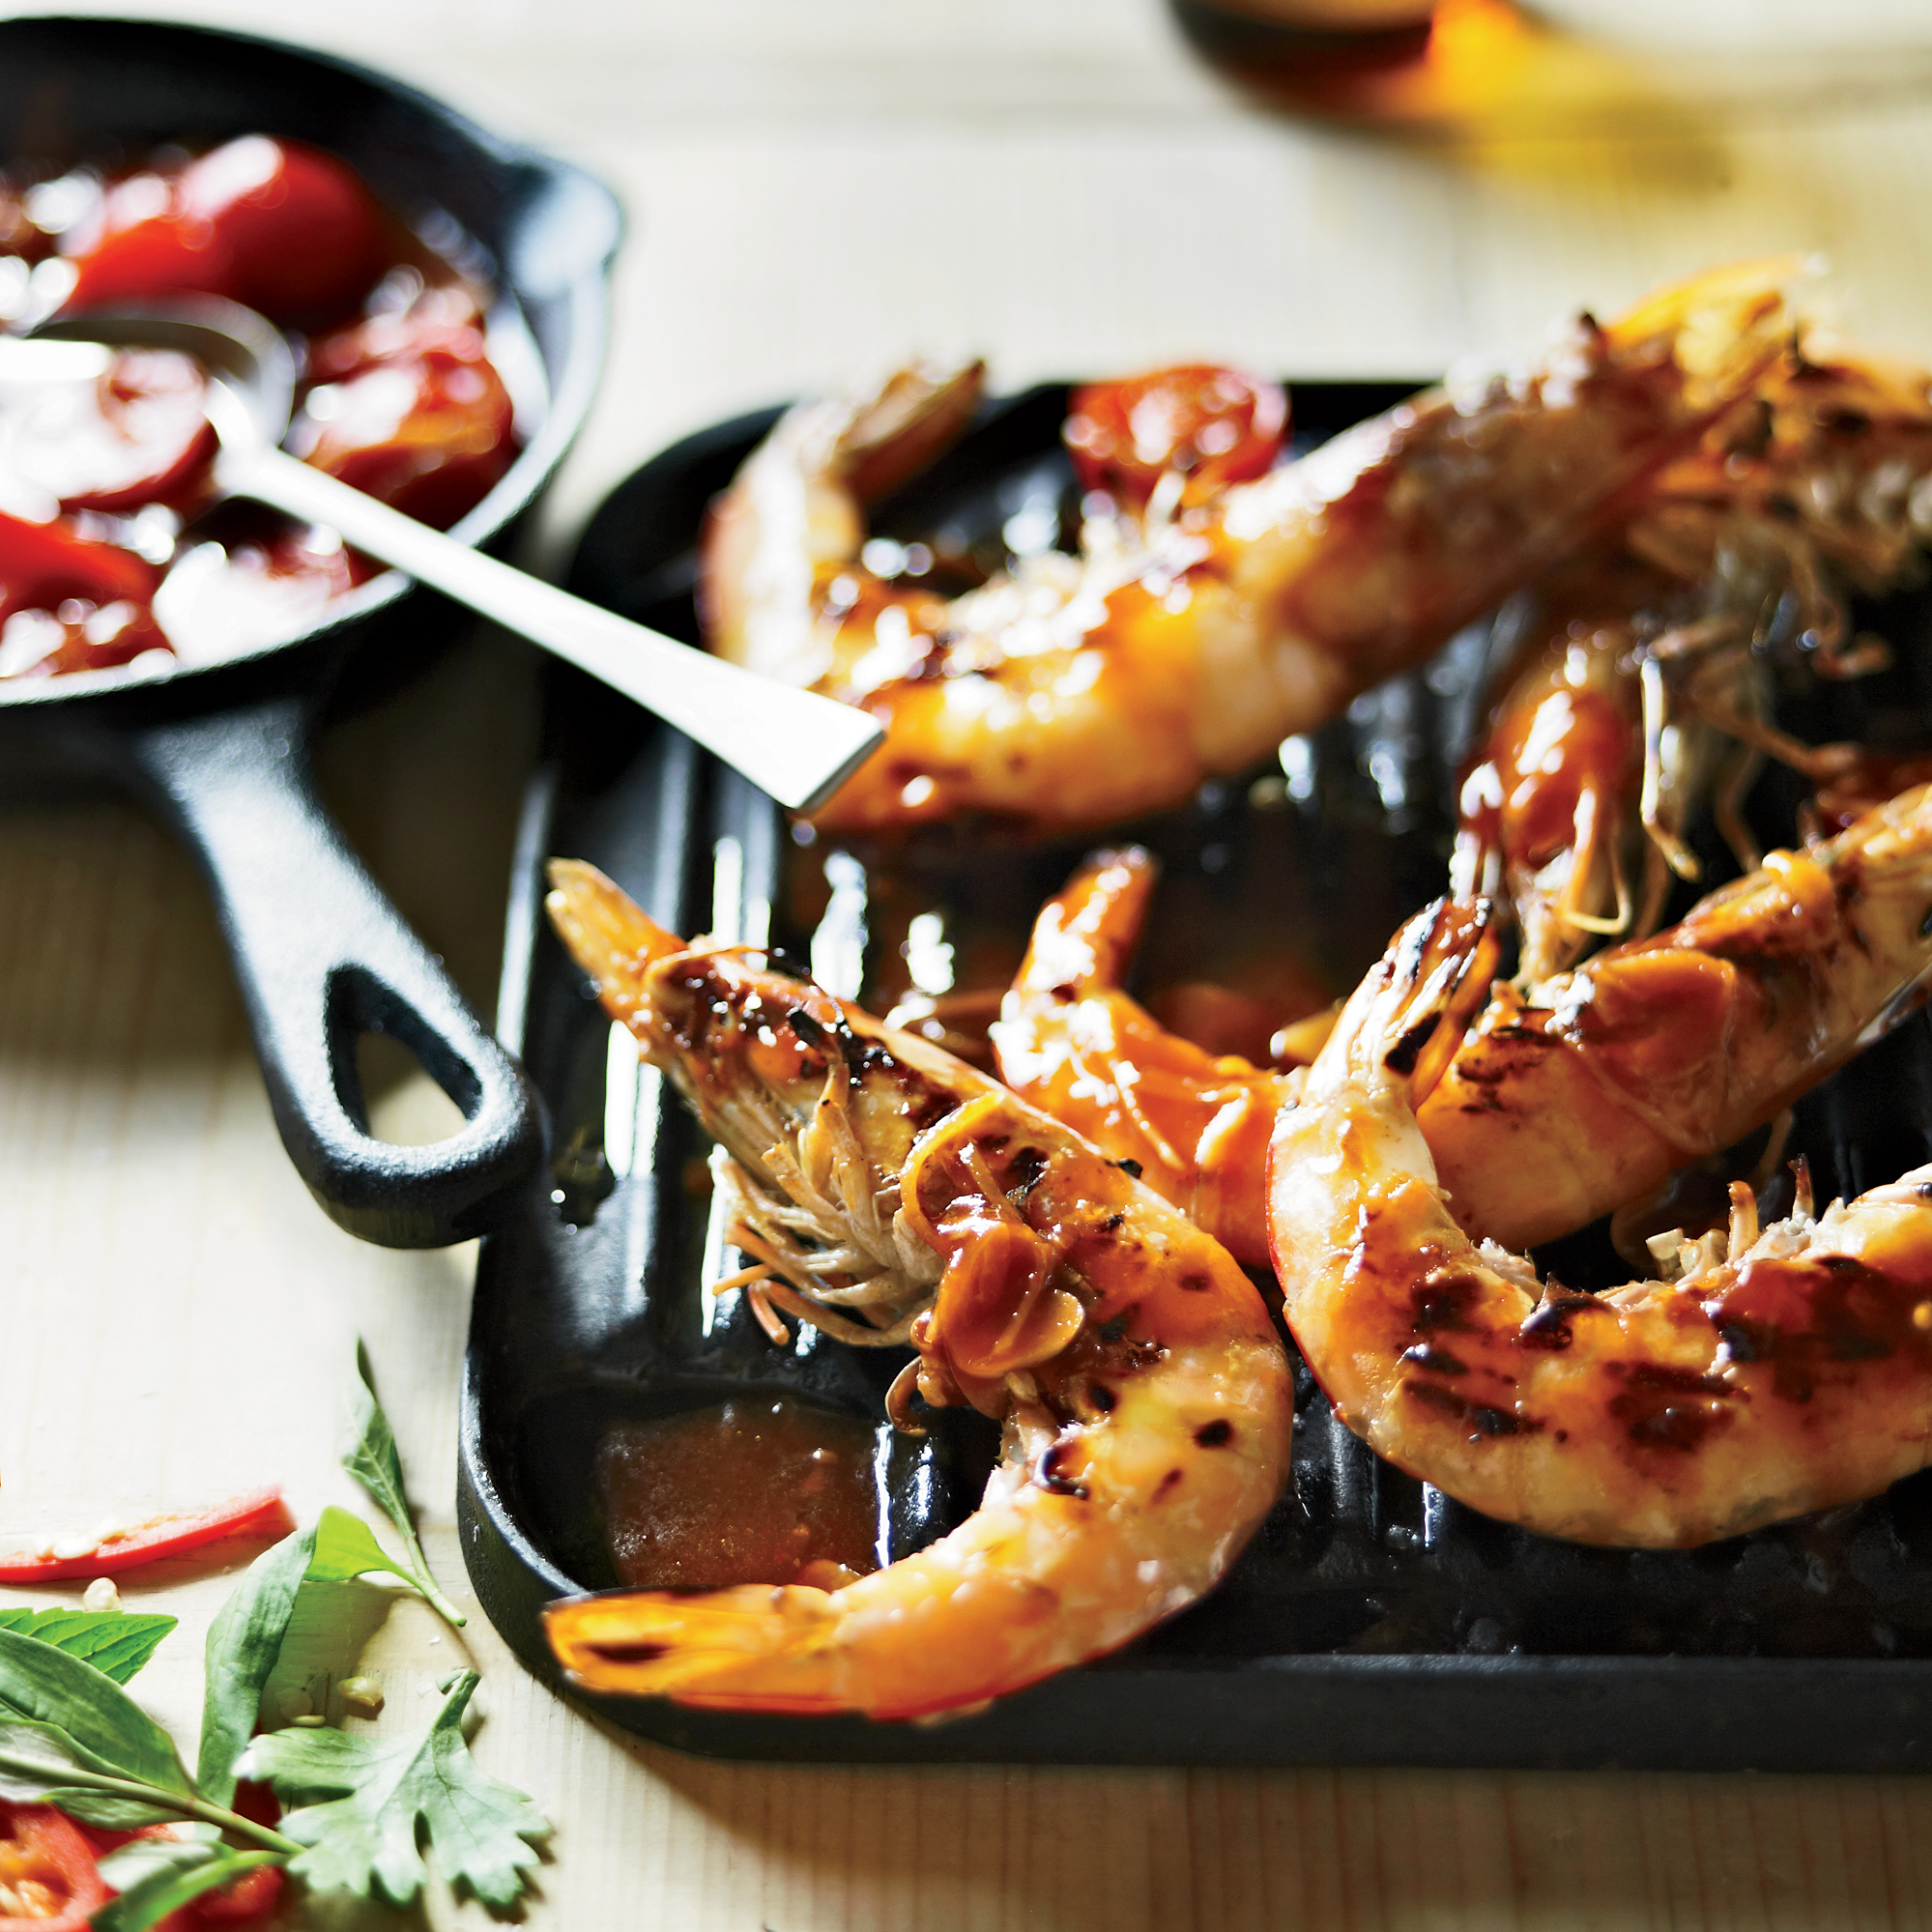 Grilled Shrimp with Sweet Chile Sauce